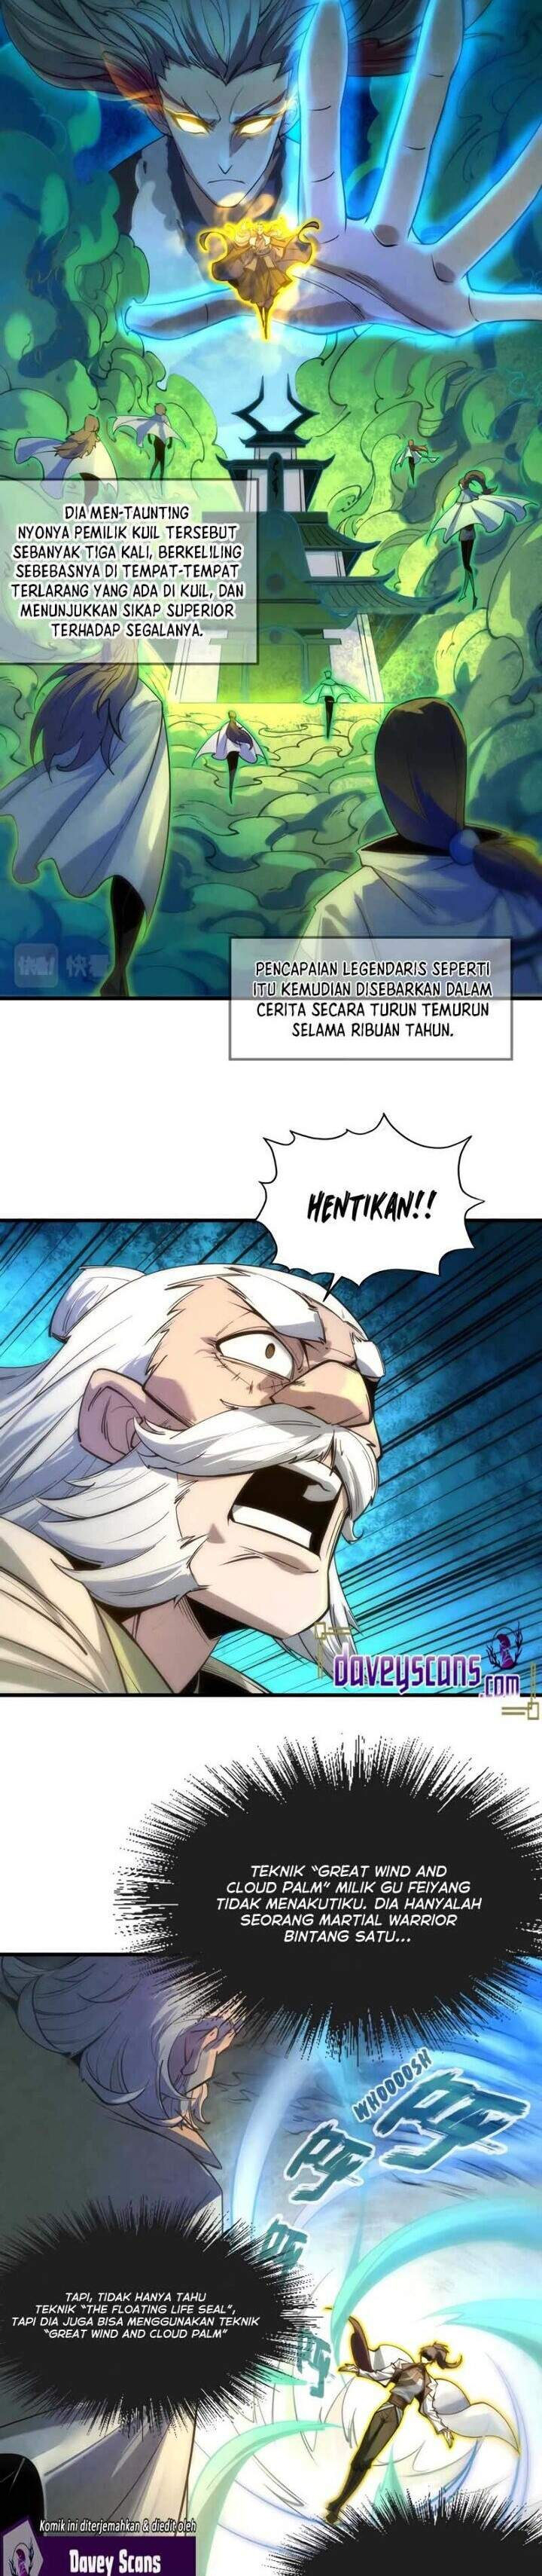 The Ultimate of All Ages Chapter 23